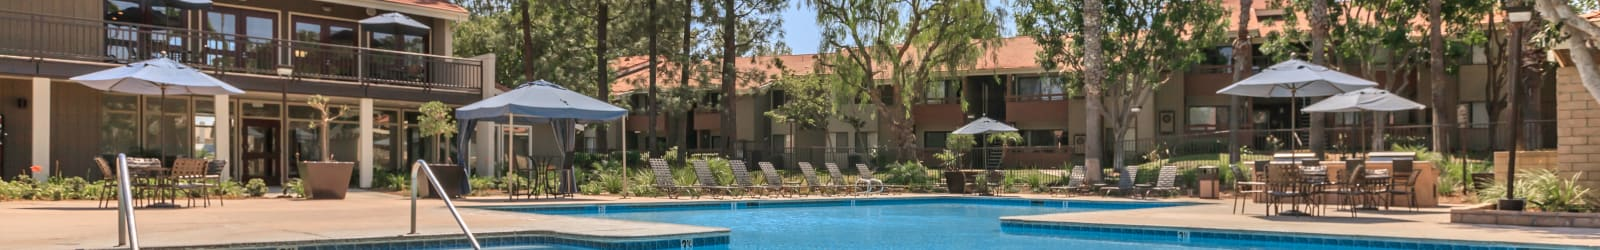 Photo gallery of the beautiful apartments for rent in Corona